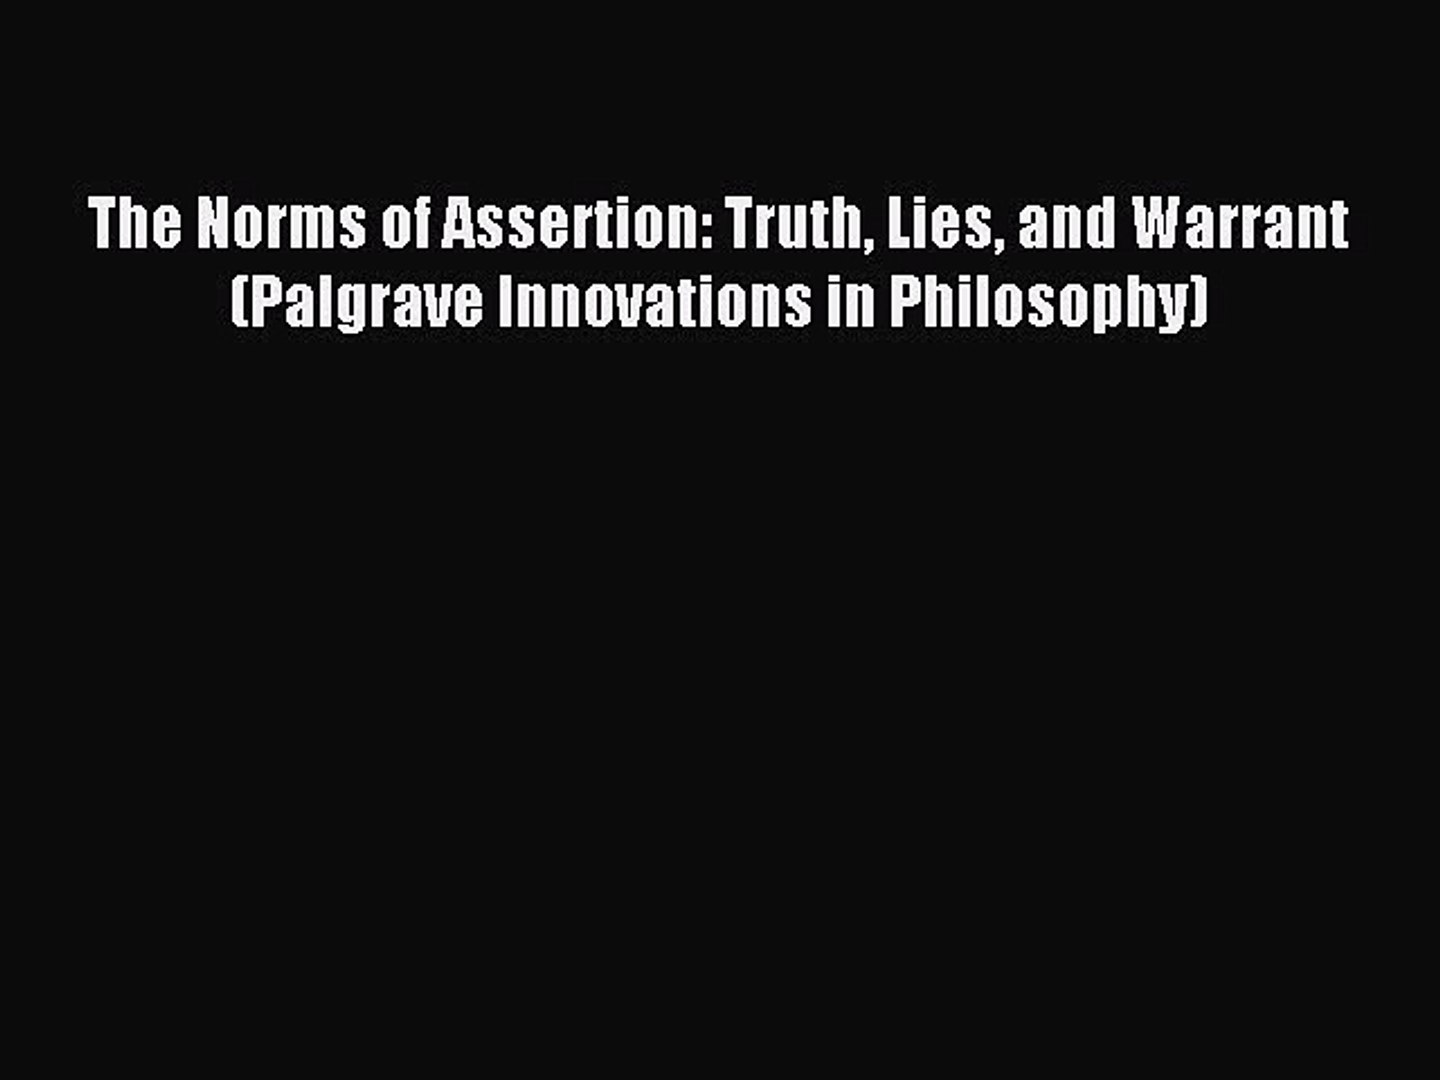 The Norms of Assertion: Truth, Lies, and Warrant